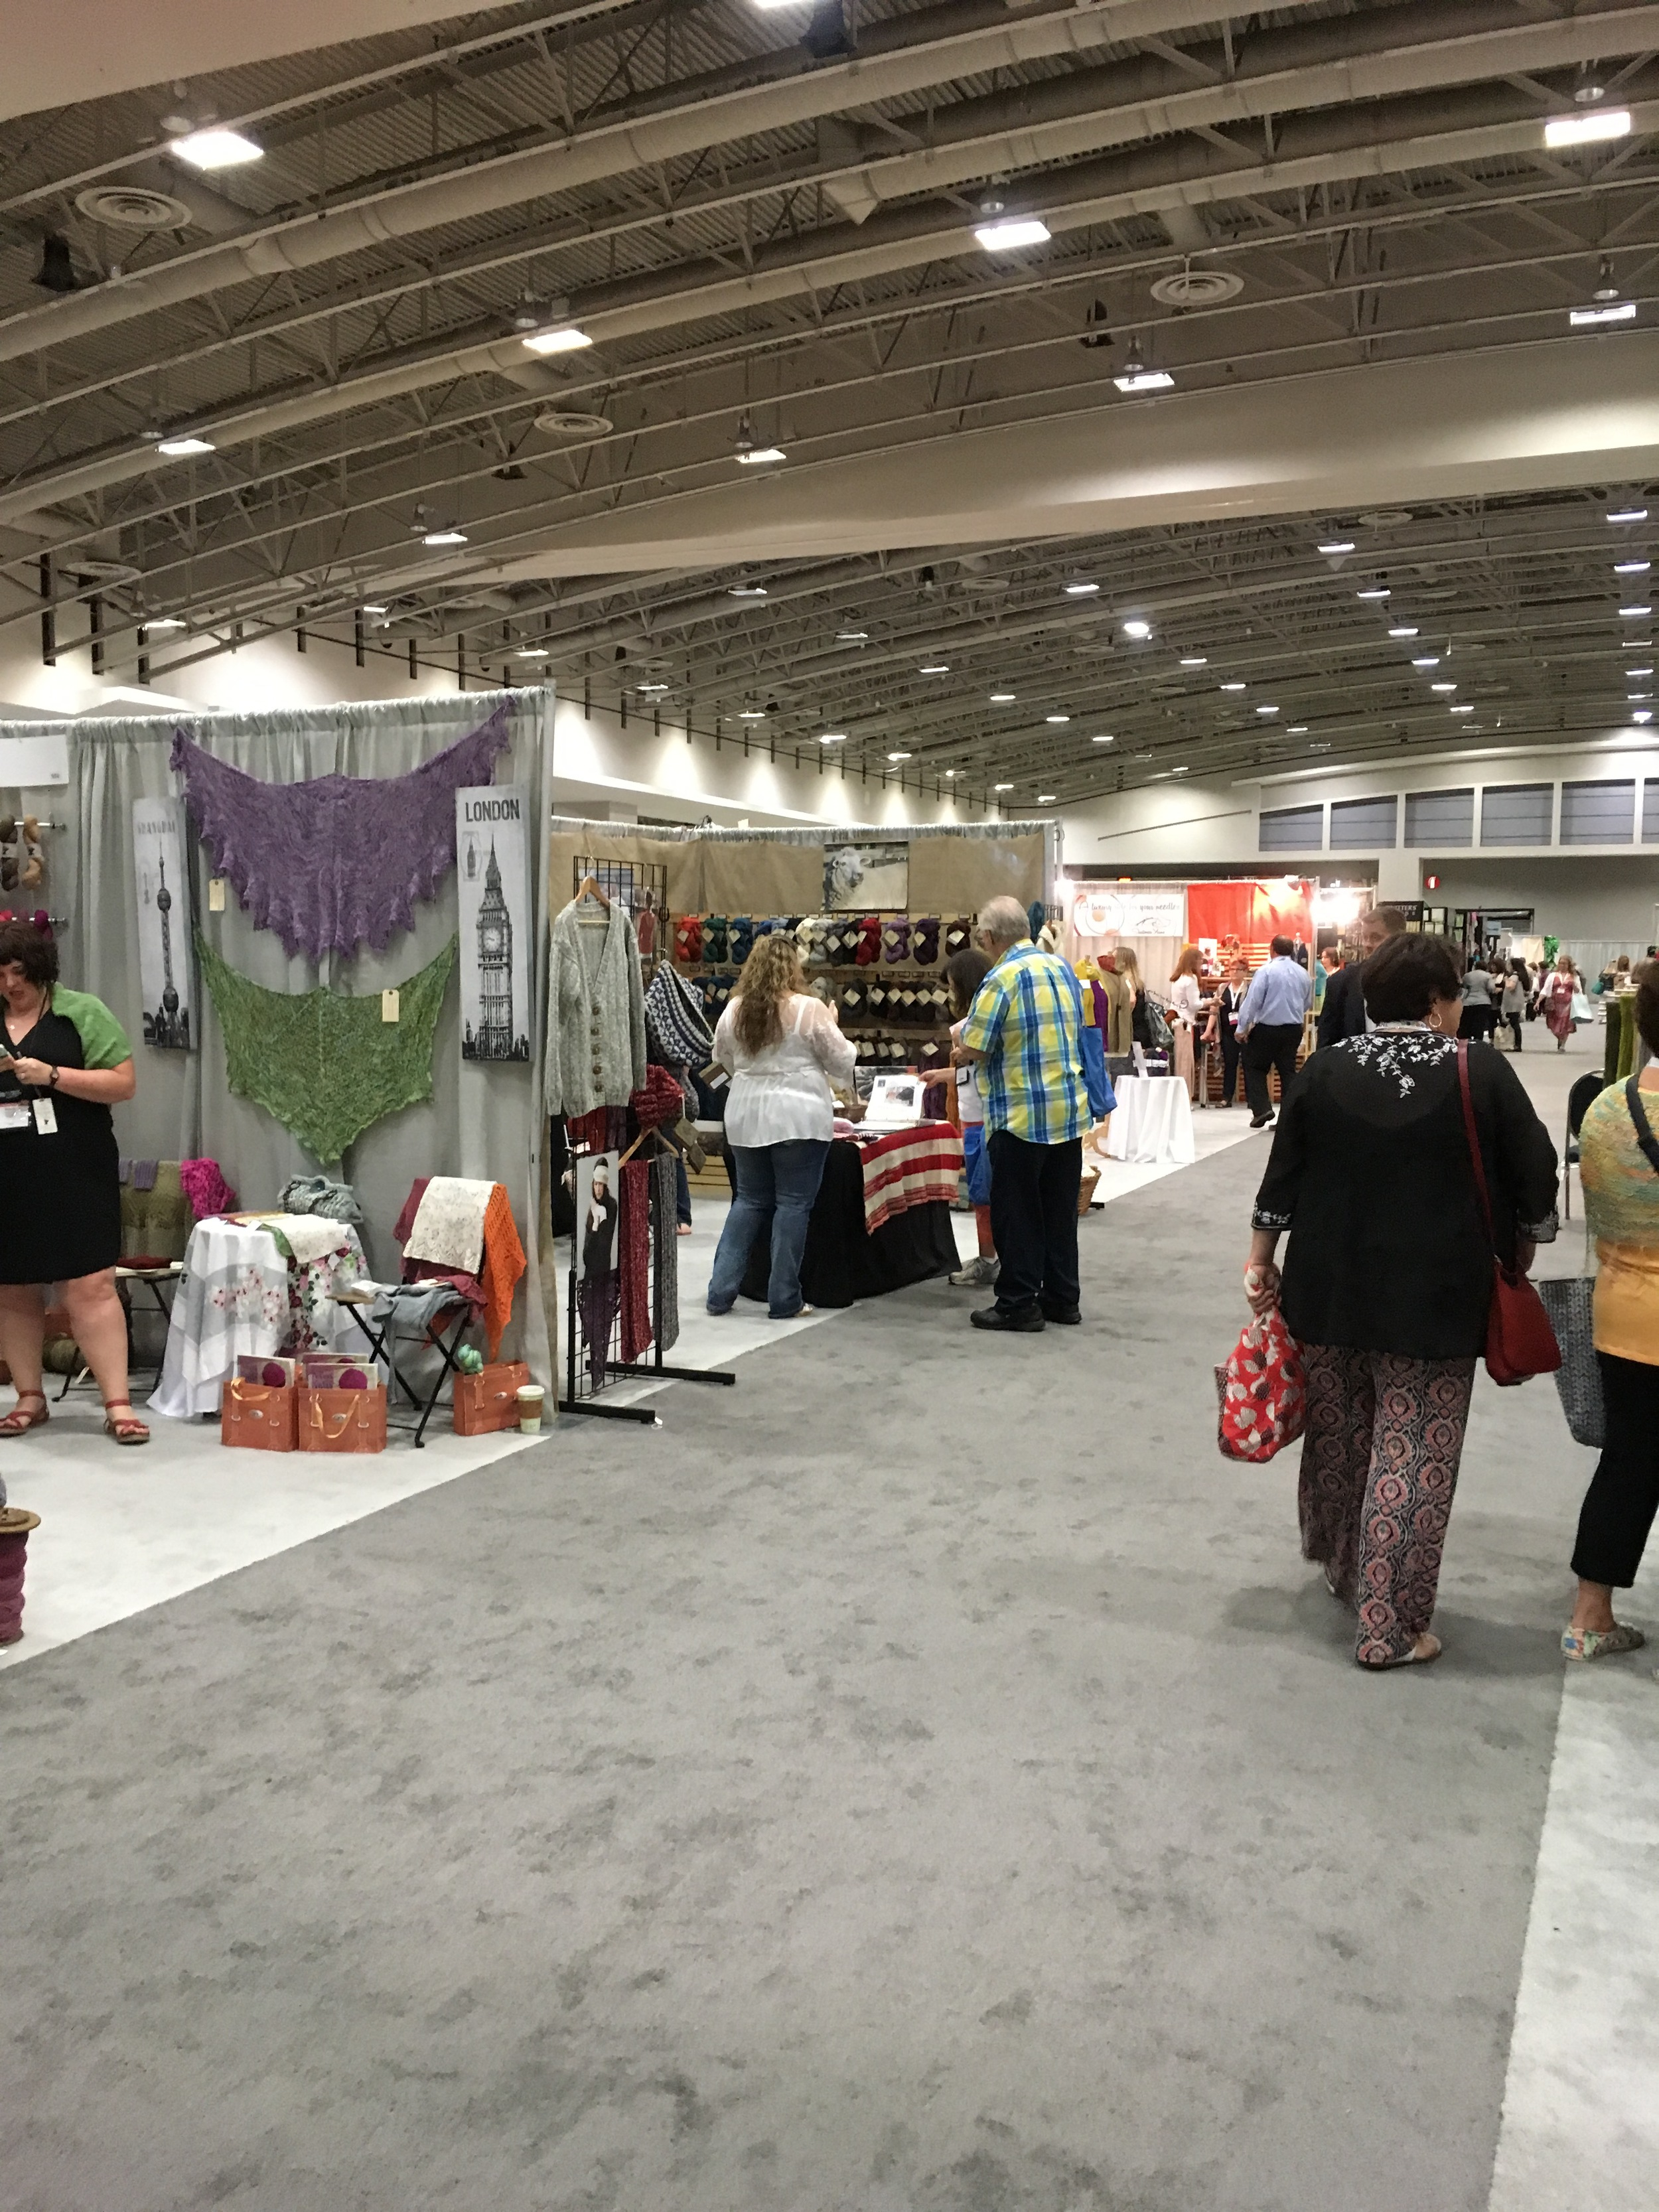 One of the aisles at the show